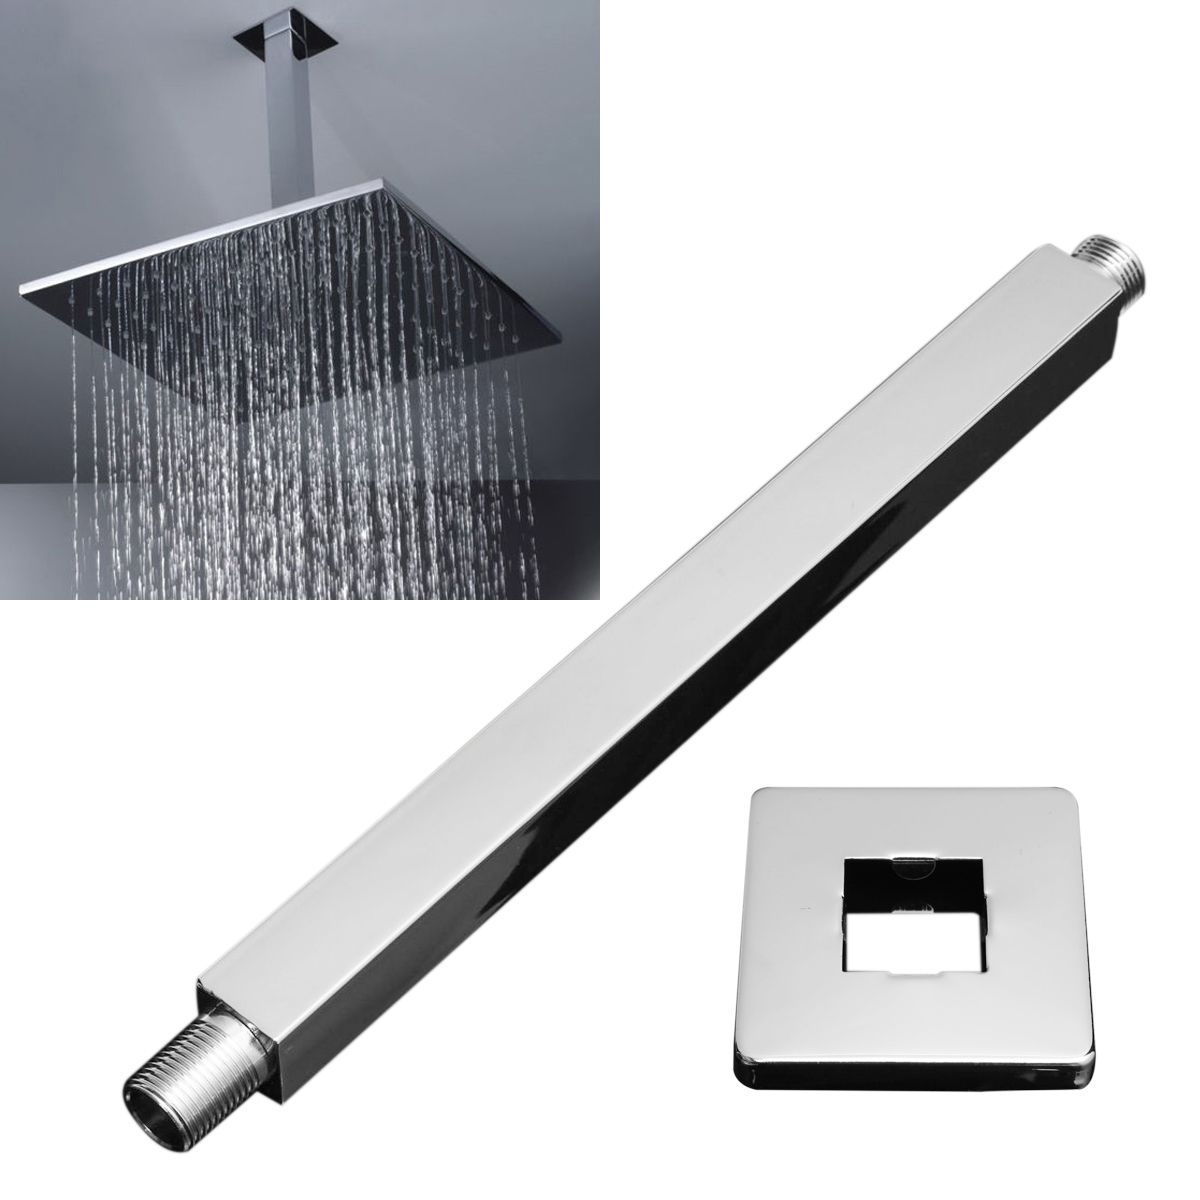 Mayitr Bathroom Square Wall Mounted Shower Extension Arm Stainless Steel  Rain Shower Head Extension Pipe 34cm